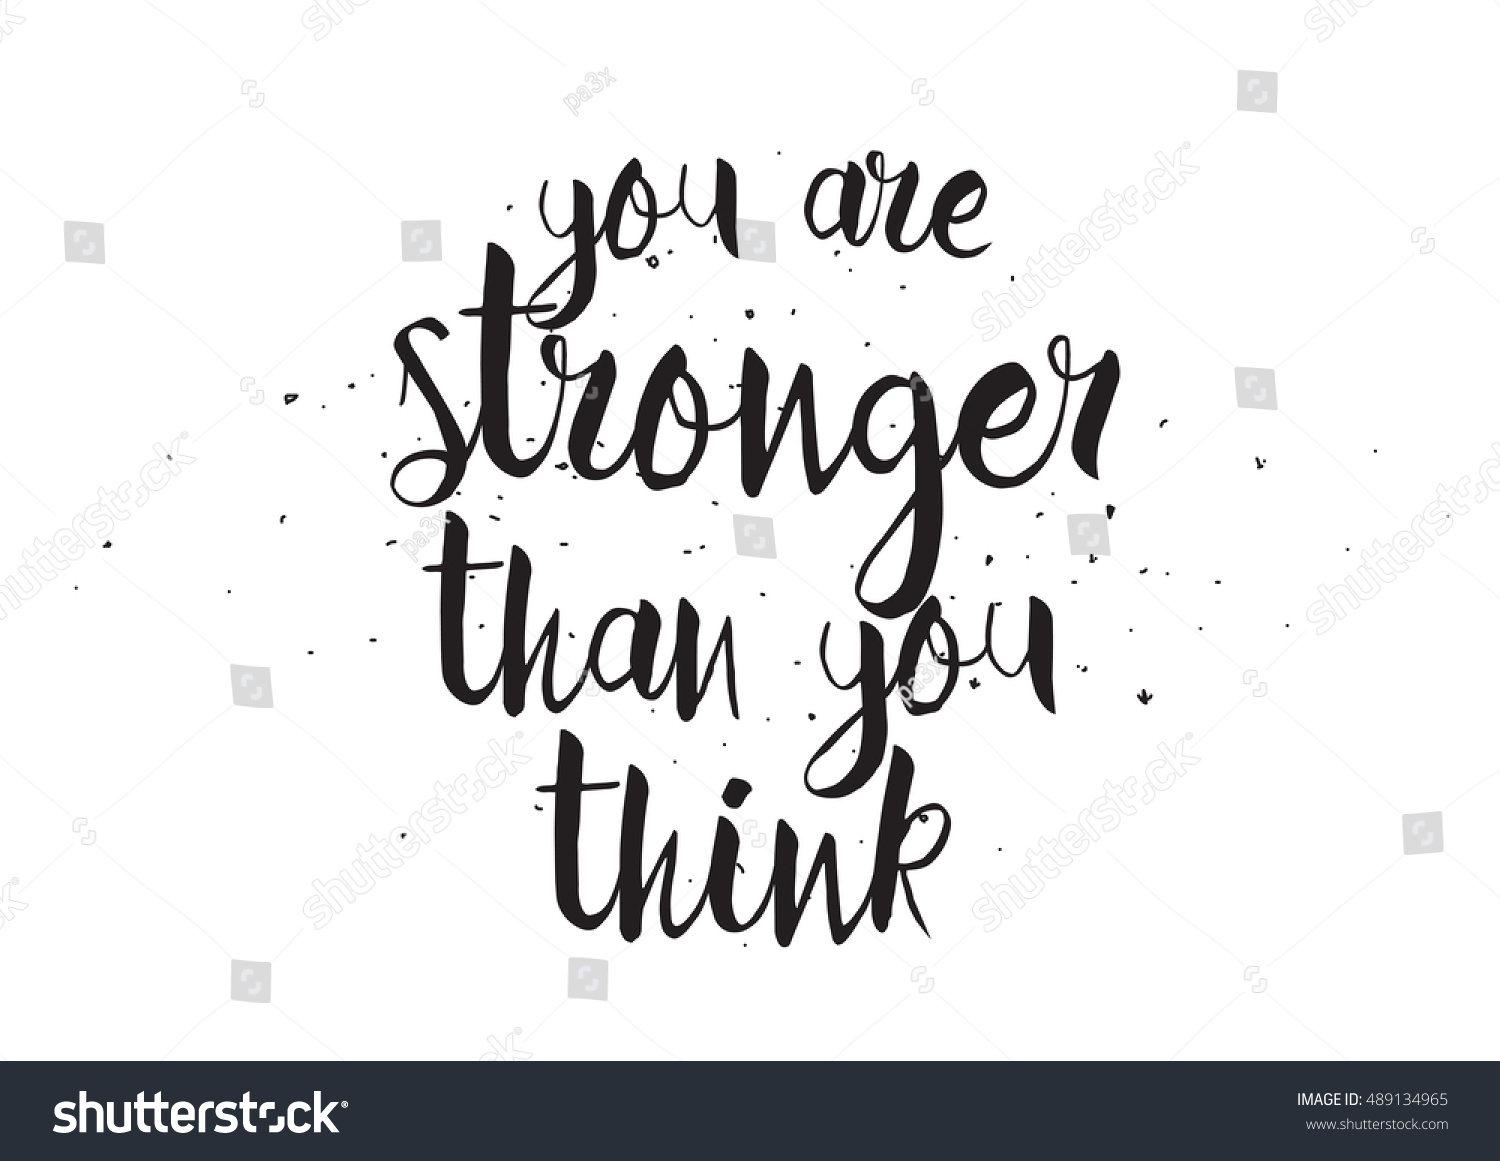 You are stronger than think inscription greeting card with calligraphy hand drawn design